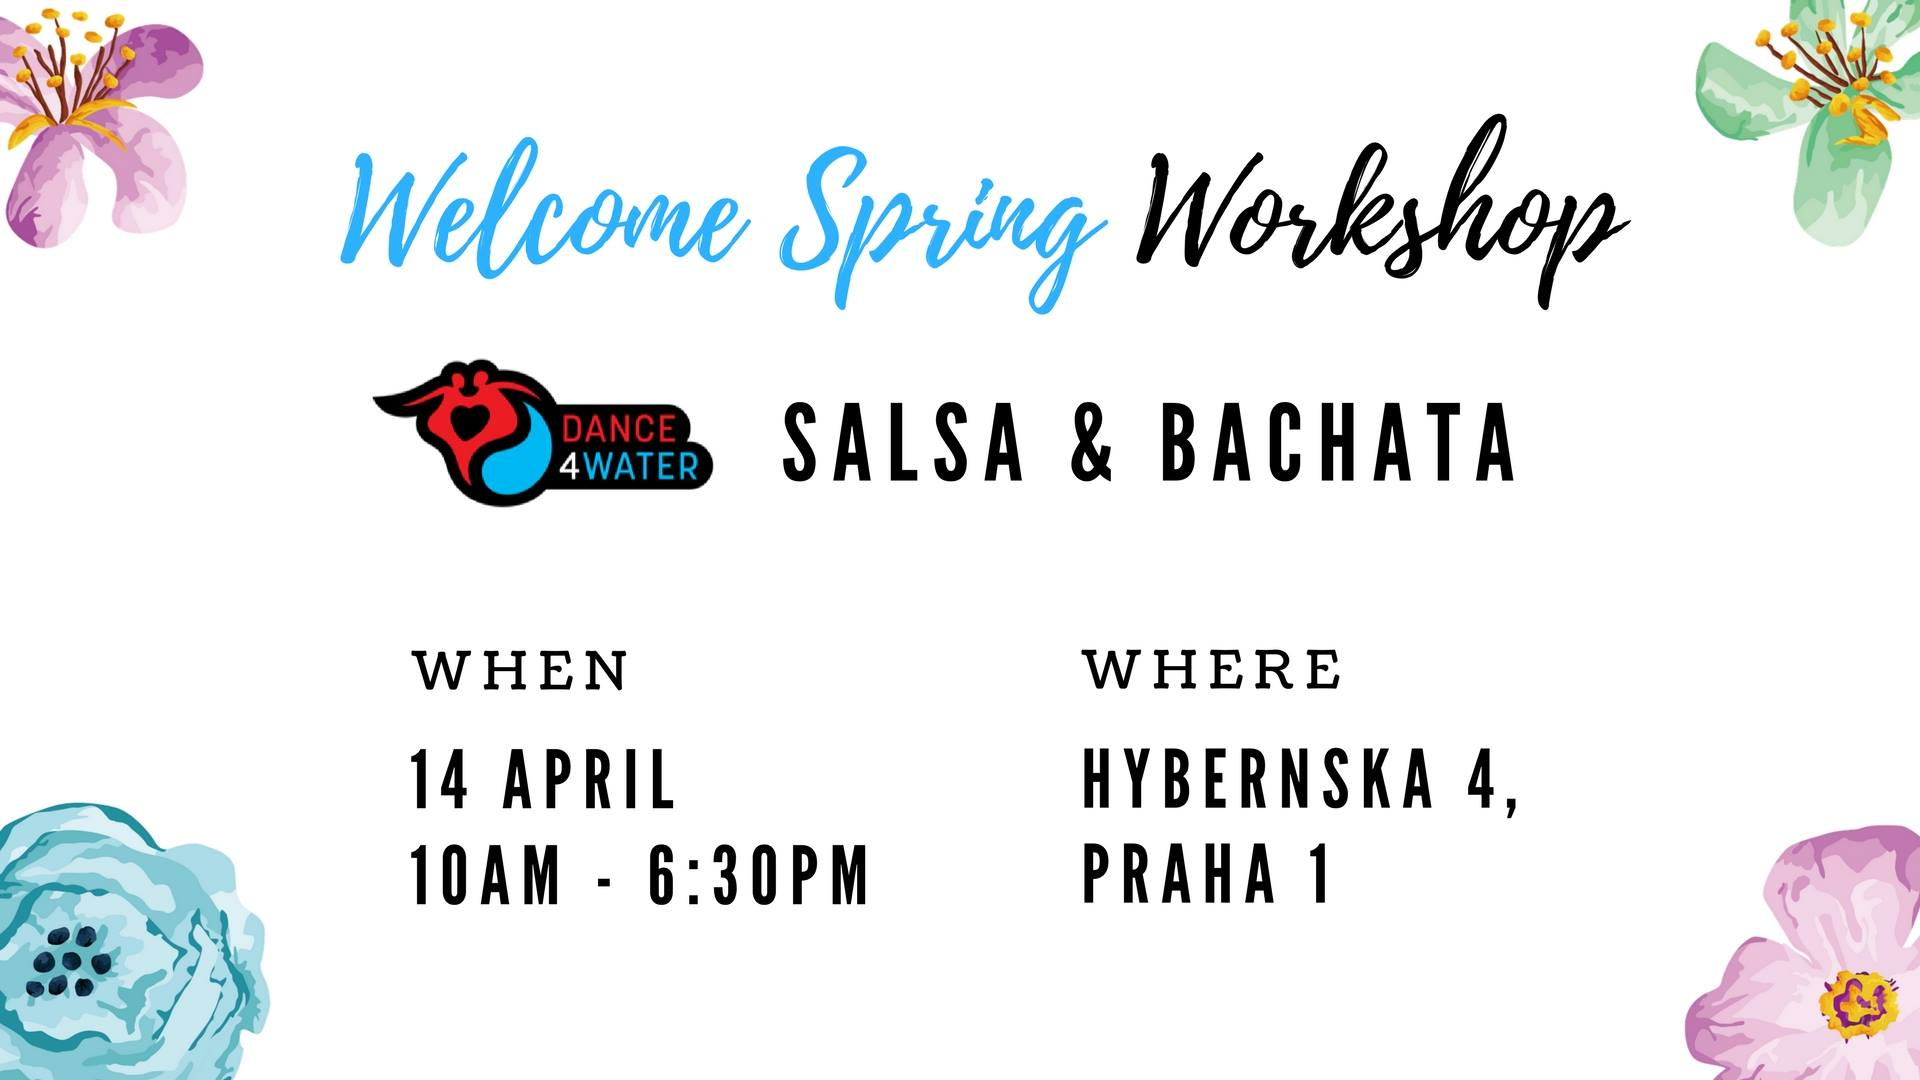 Welcome Spring Workshop